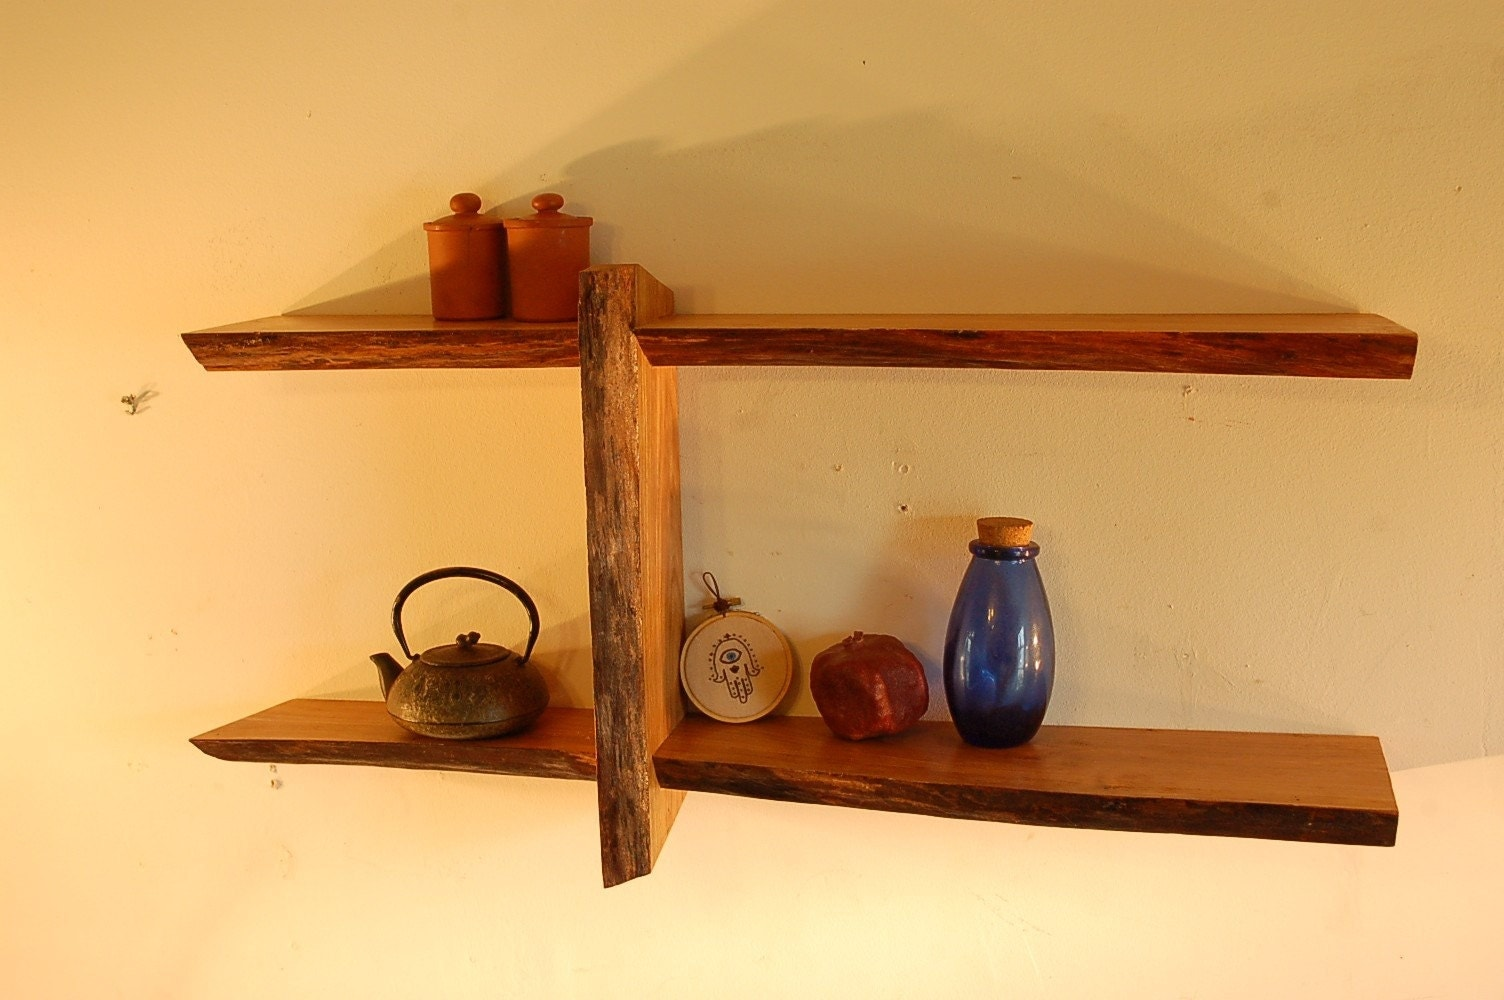 No. 5 - Live Edge Shelf